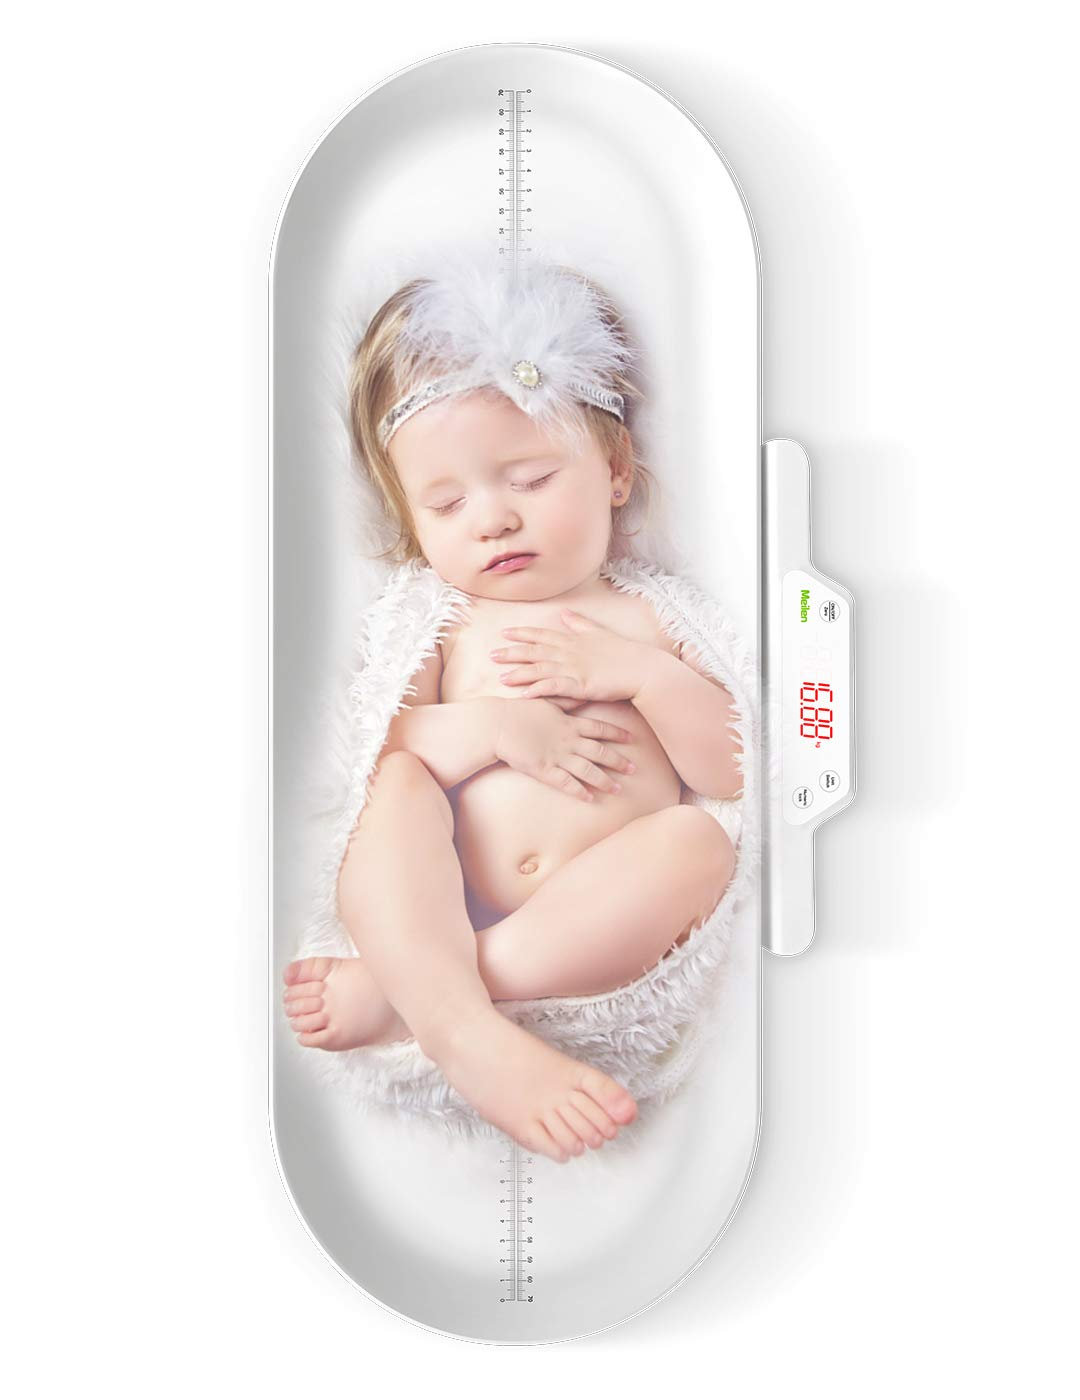 Baby Scale,Pet Scale,Infant Scale Digital,with Height Tray(Max: 27.5in/70cm) Measure Weight Accurately(Max: 220lb), Perfect for Toddler/Puppy/Cat/Dog/Adult by Meilen life